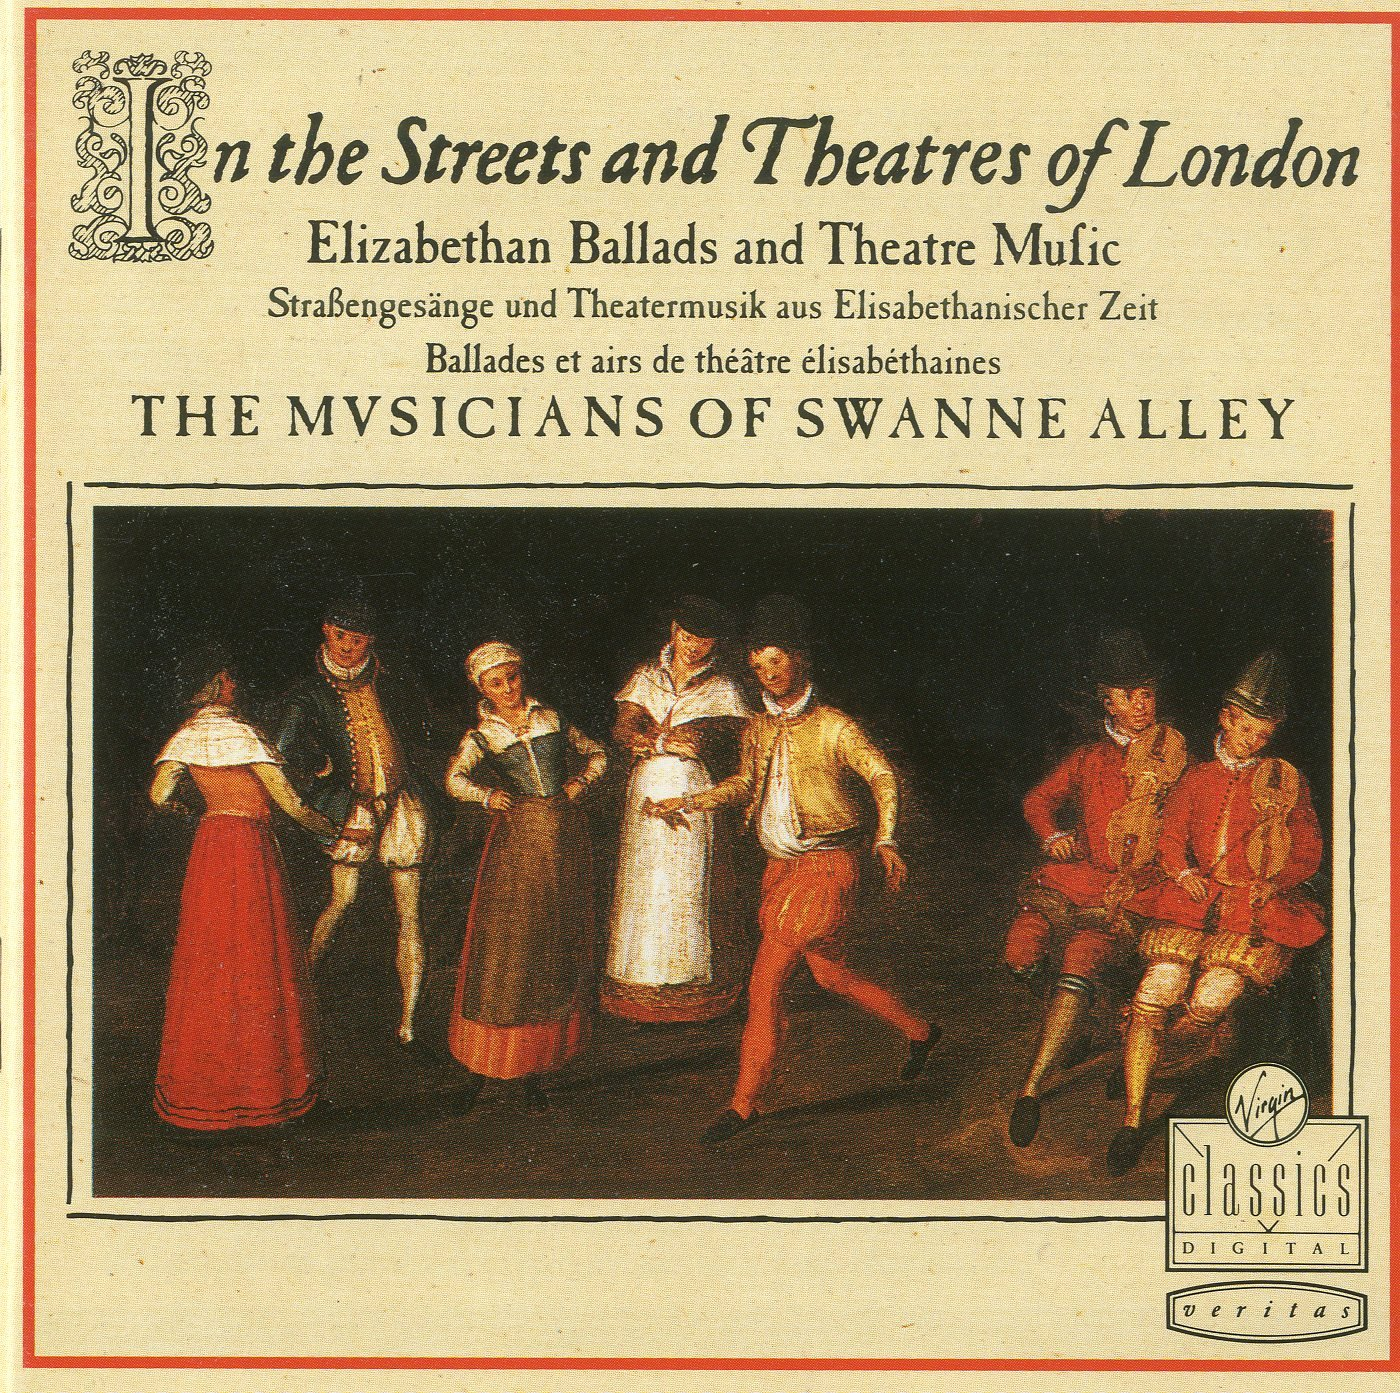 In the Streets & Theatres of London: Elizabethan Ballads & Theatre Music by Virgin Classics